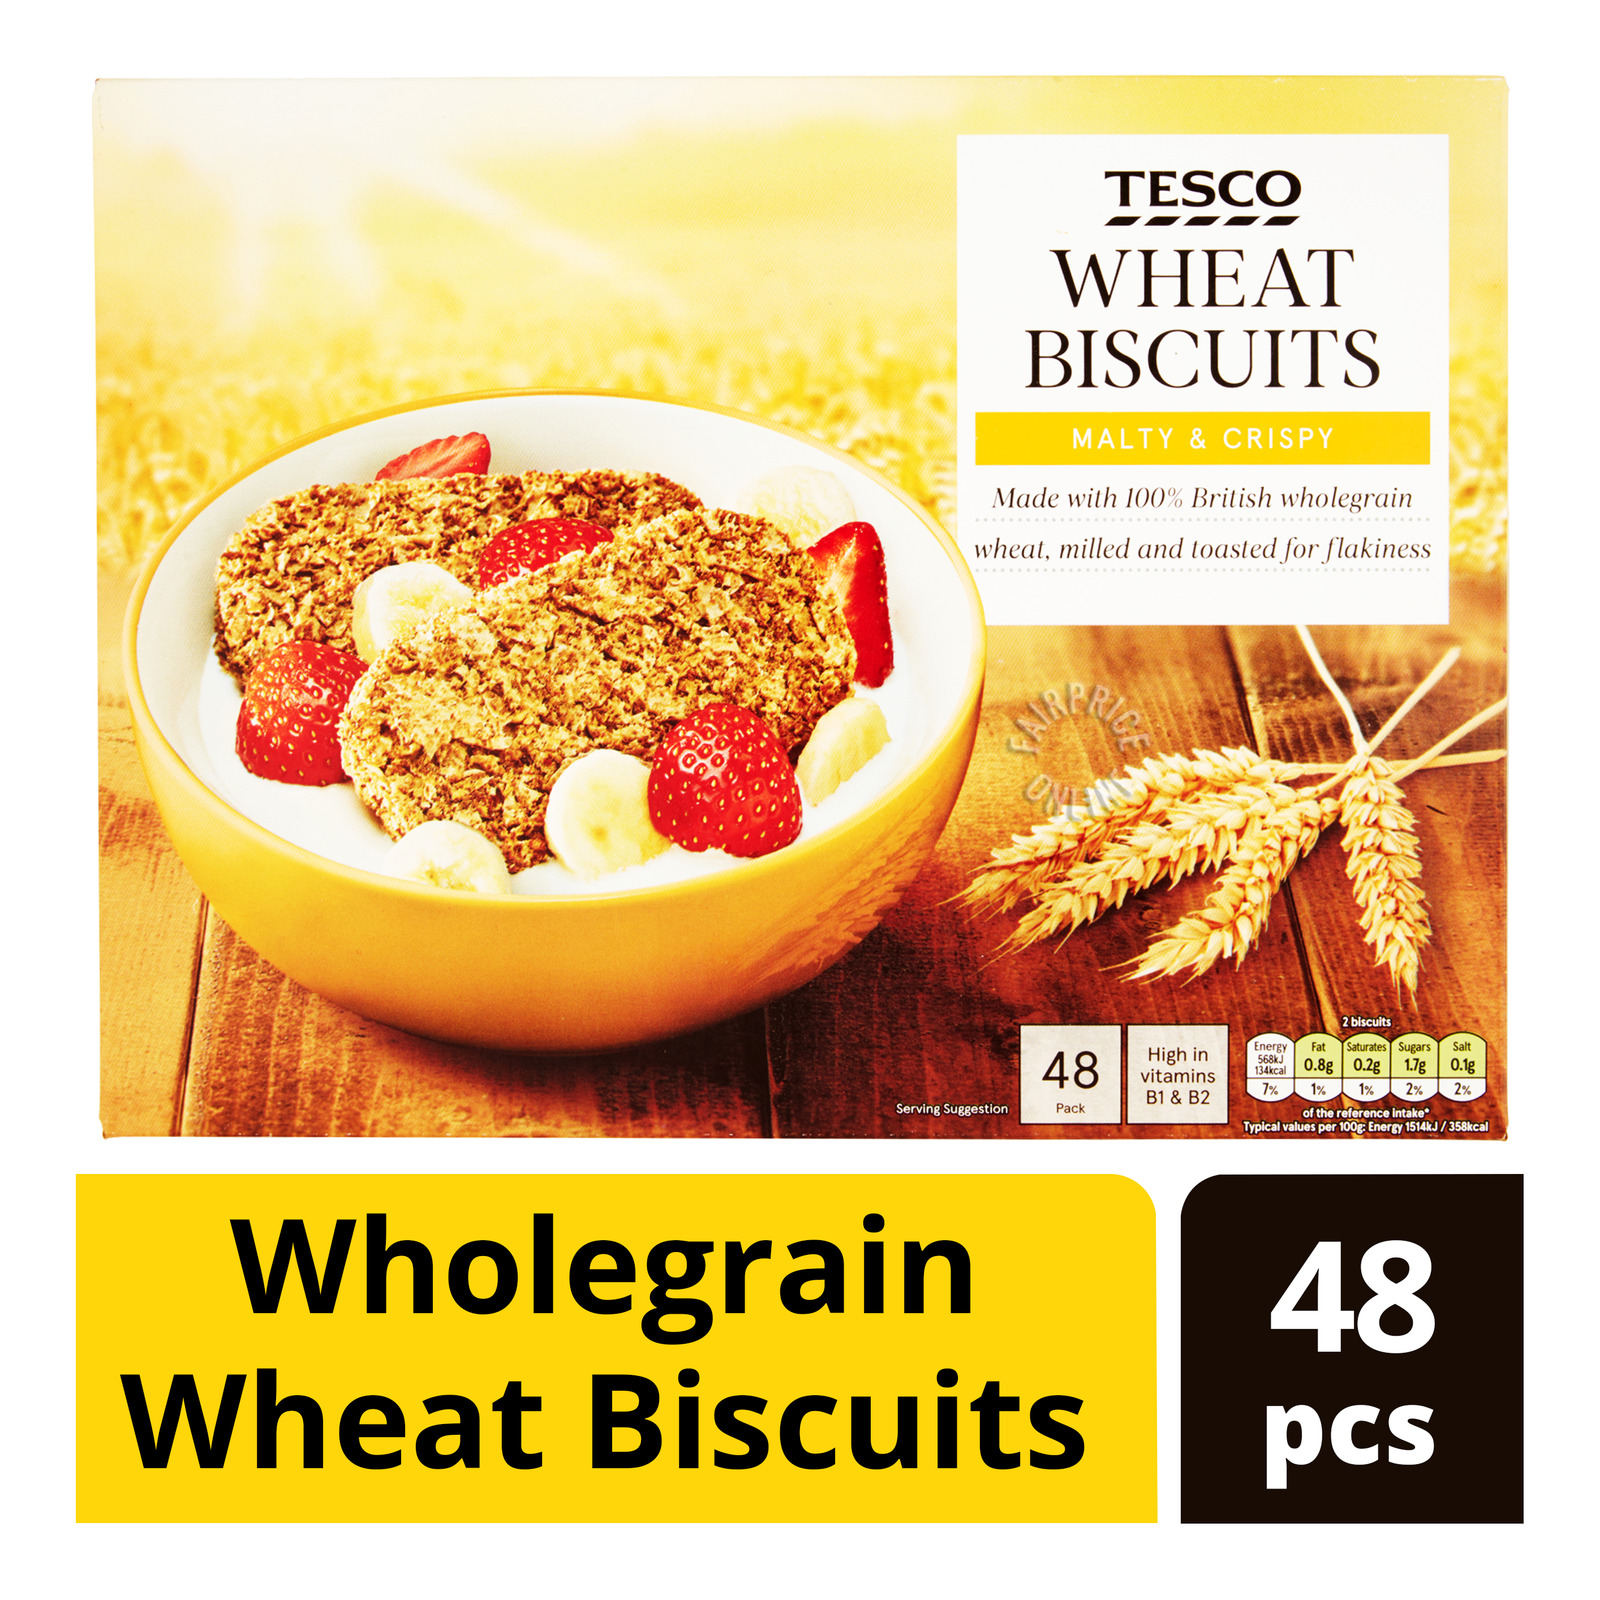 Tesco Wholegrain Wheat Biscuits